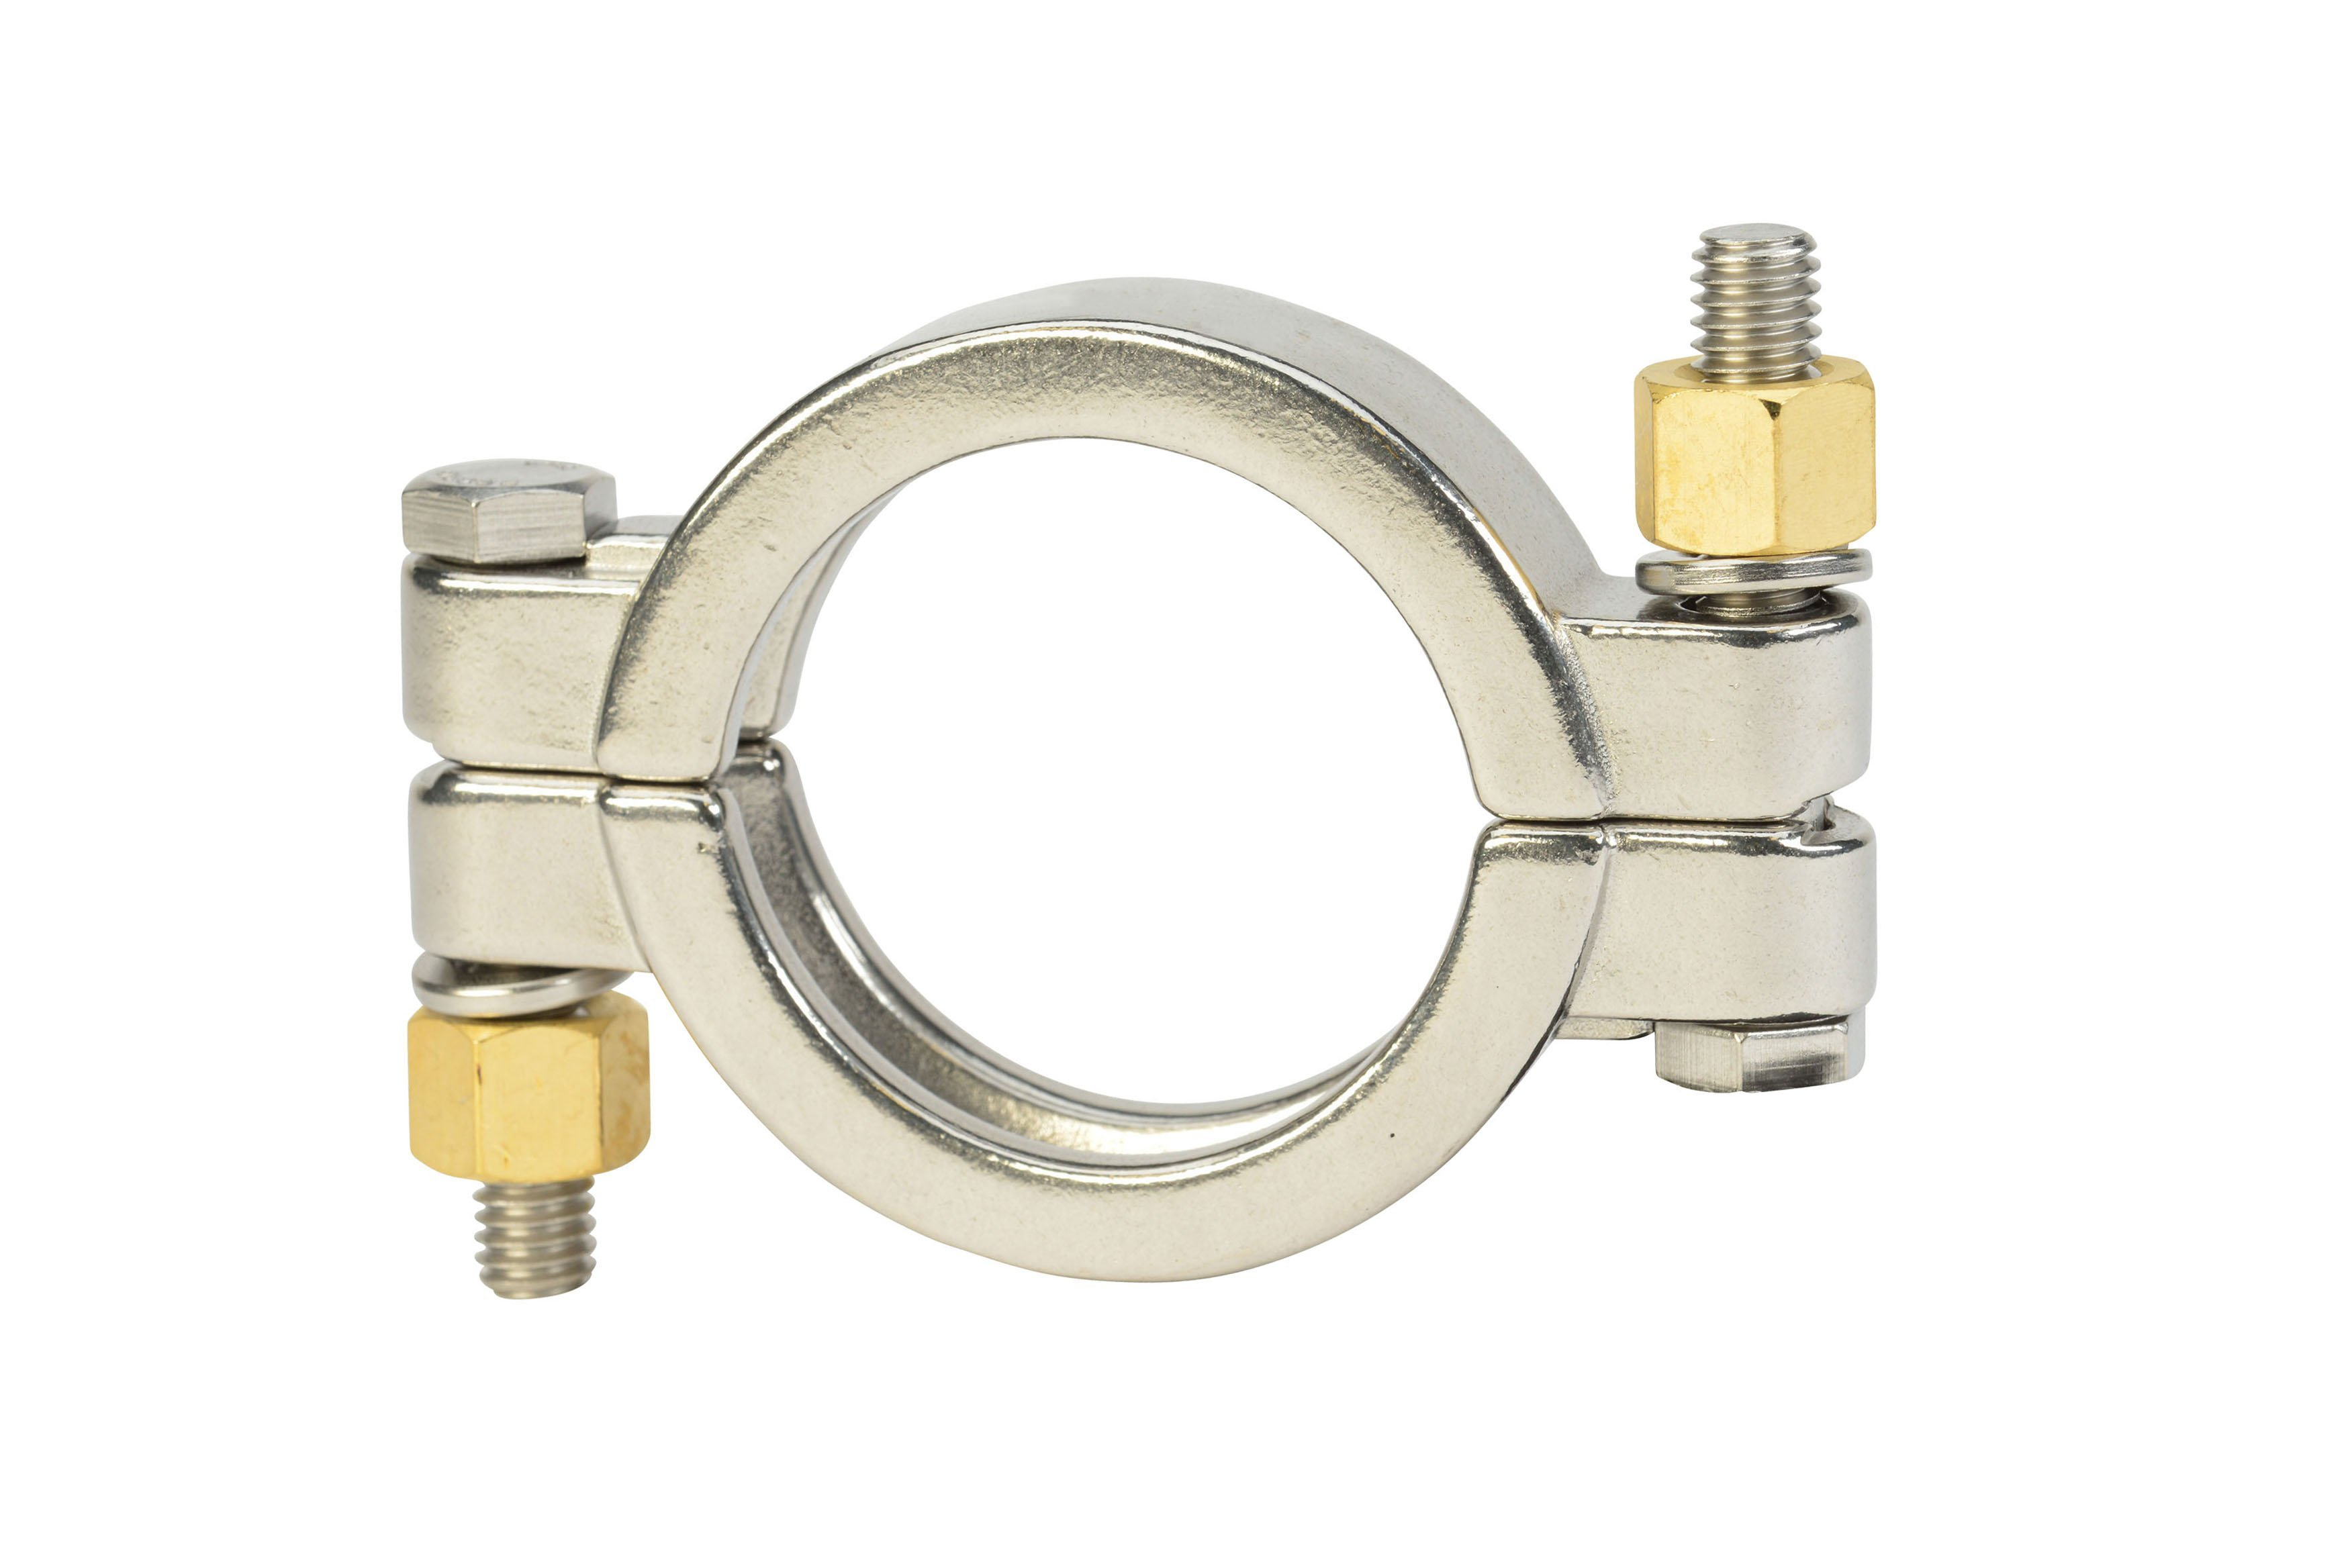 Amtech Clamps high pressure clamps